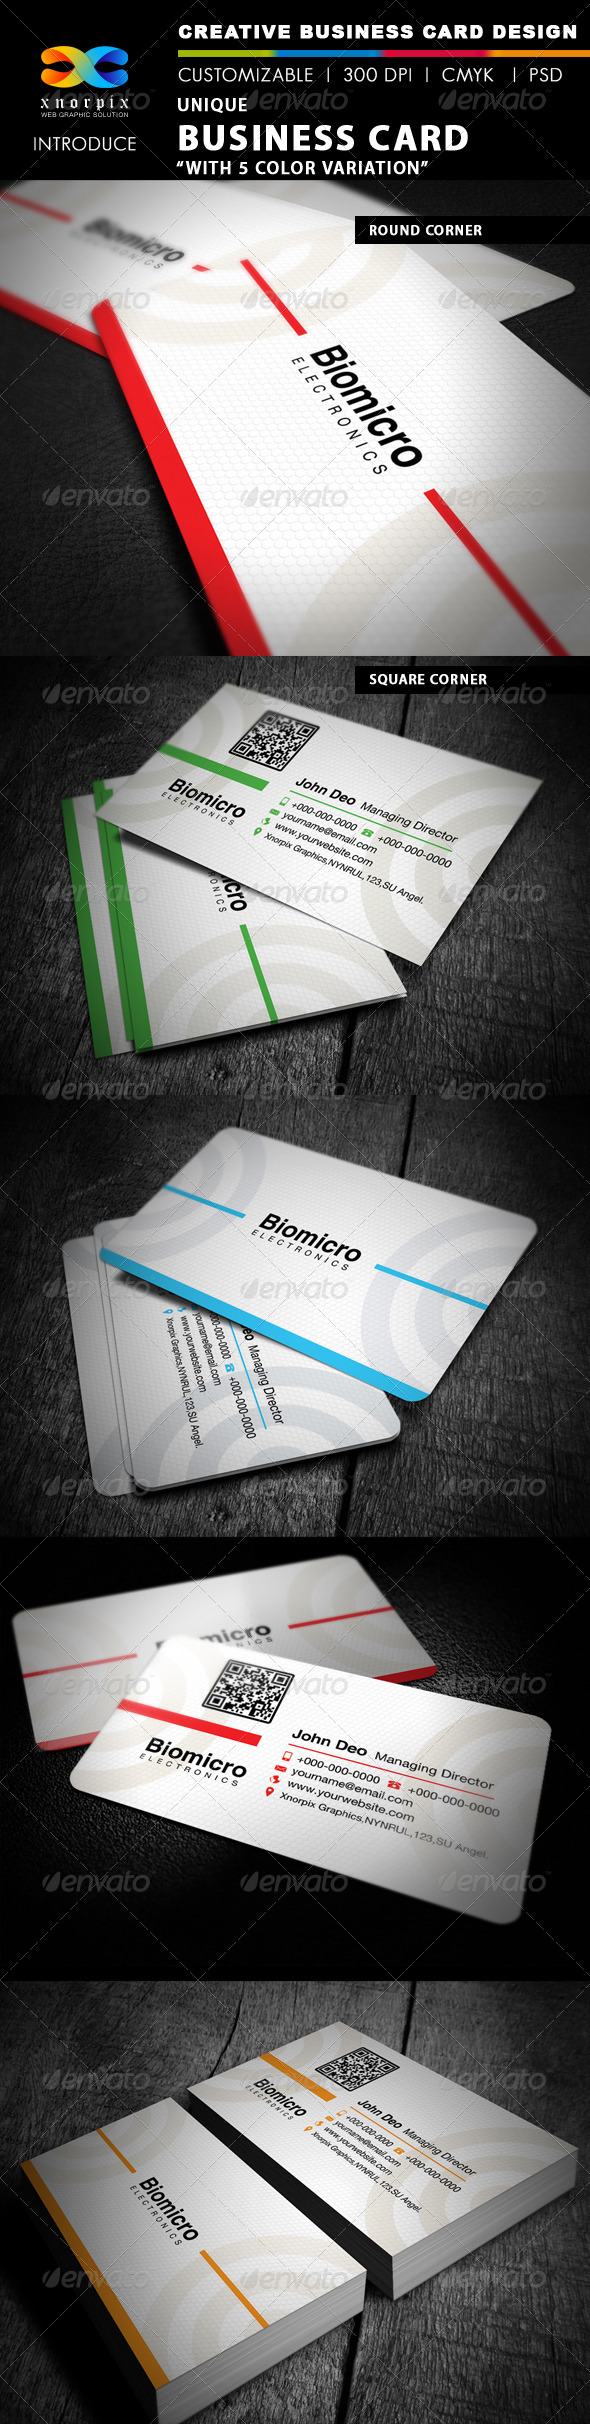 Round Business Card - Corporate Business Cards